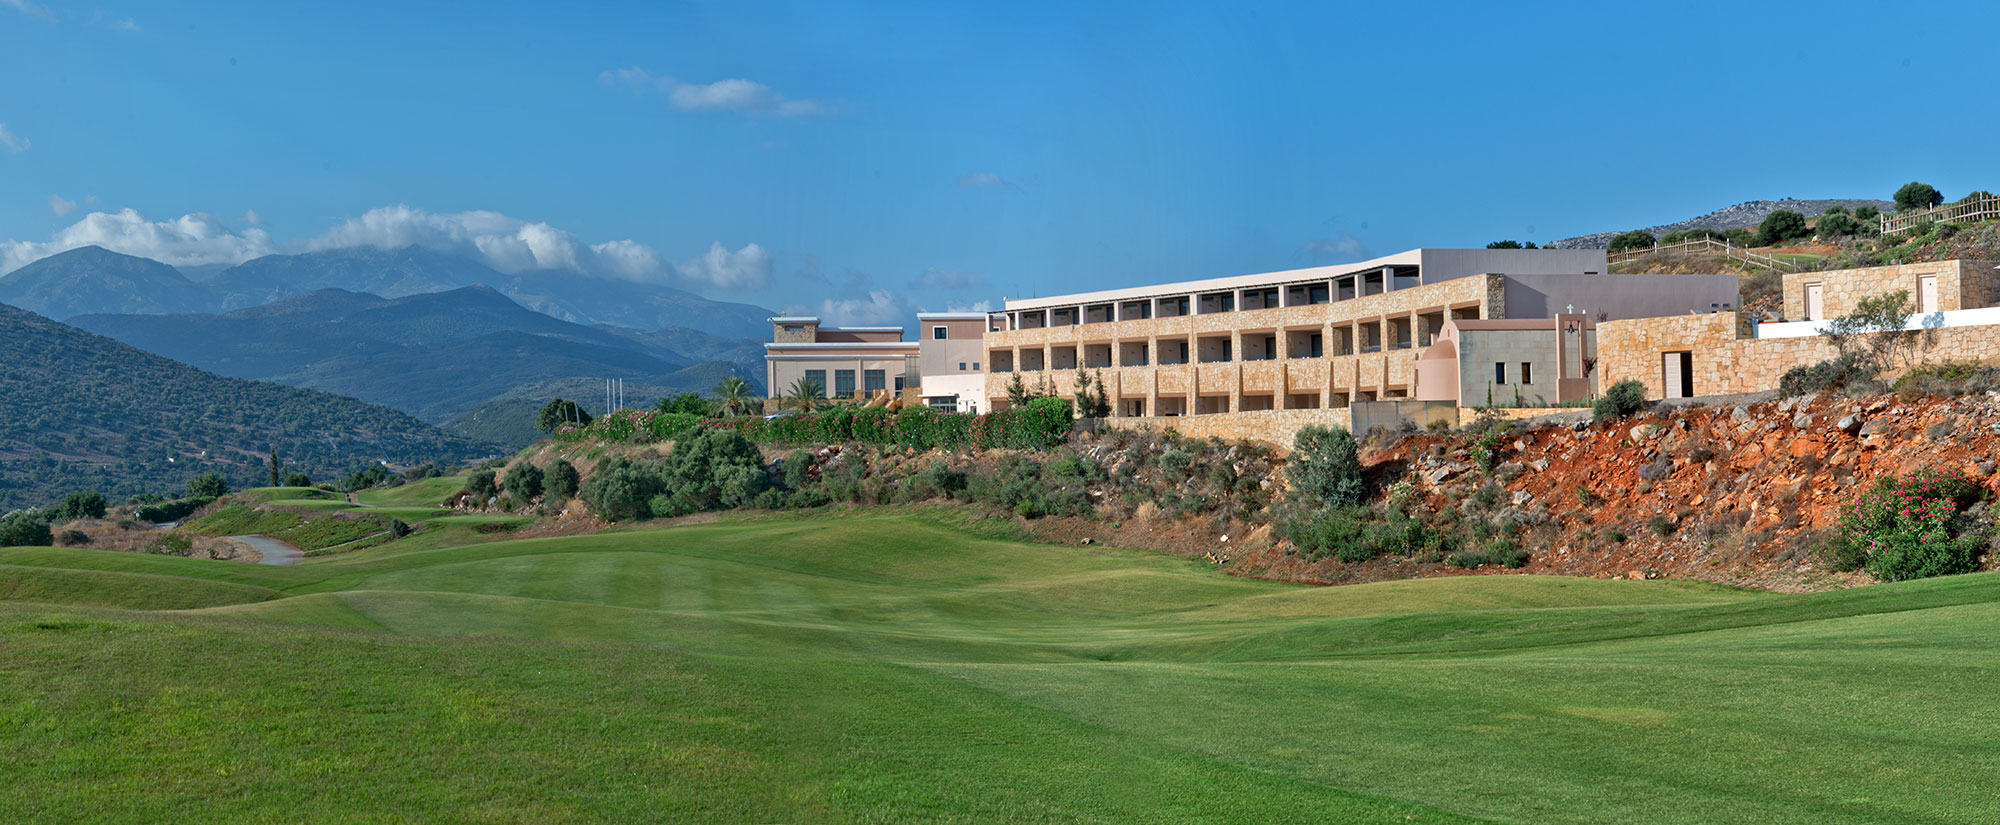 The Golf Hotel